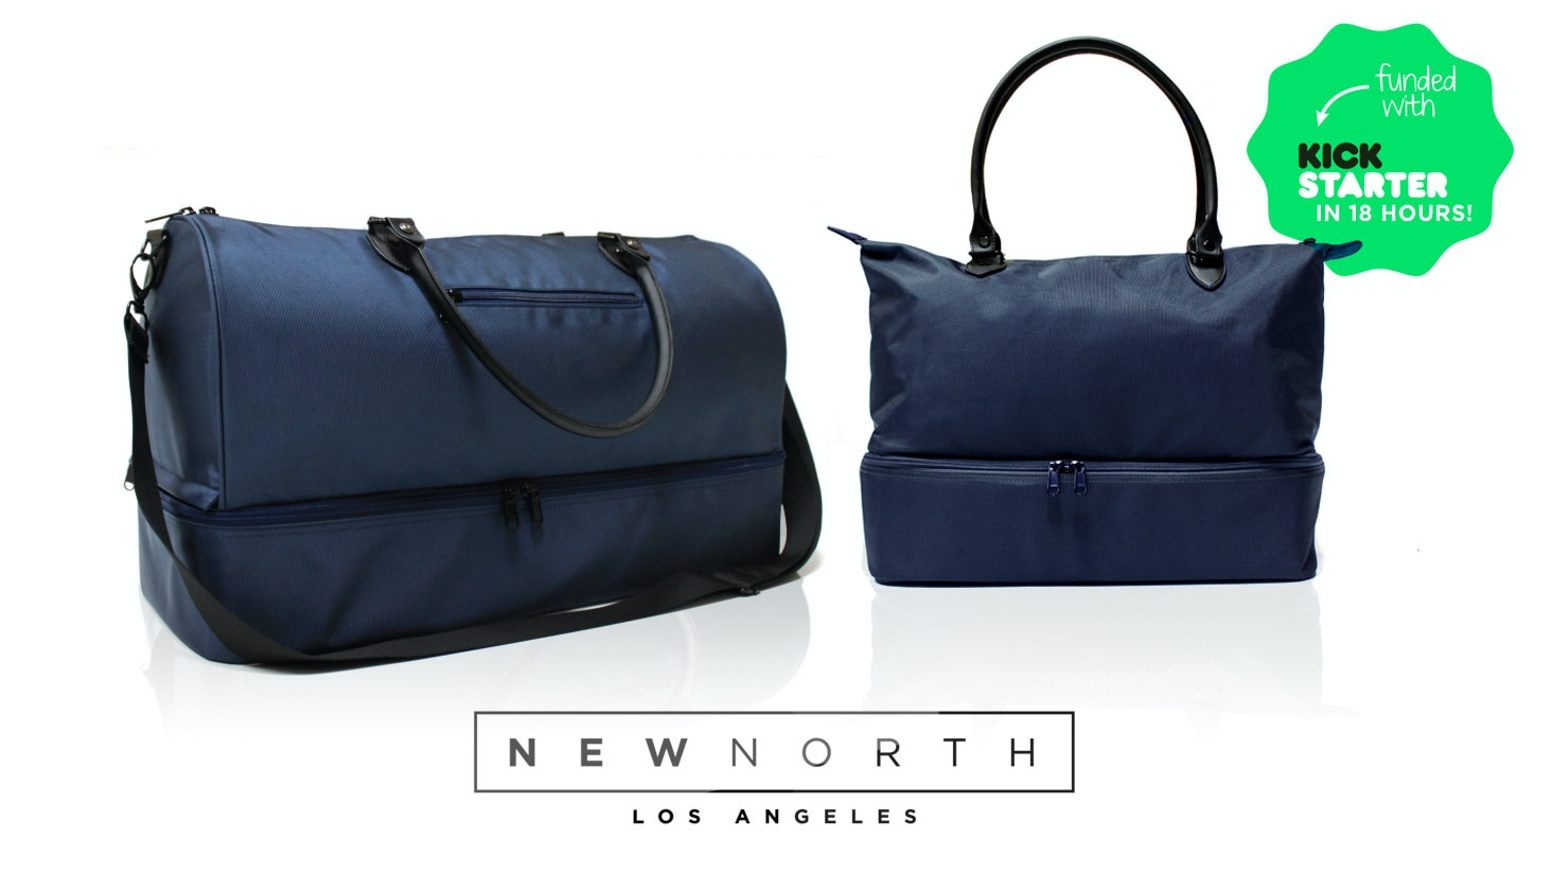 3bb3fdae33 Meticulously designed duffle and tote bags. Merging classic modern style  with versatile functions to complement